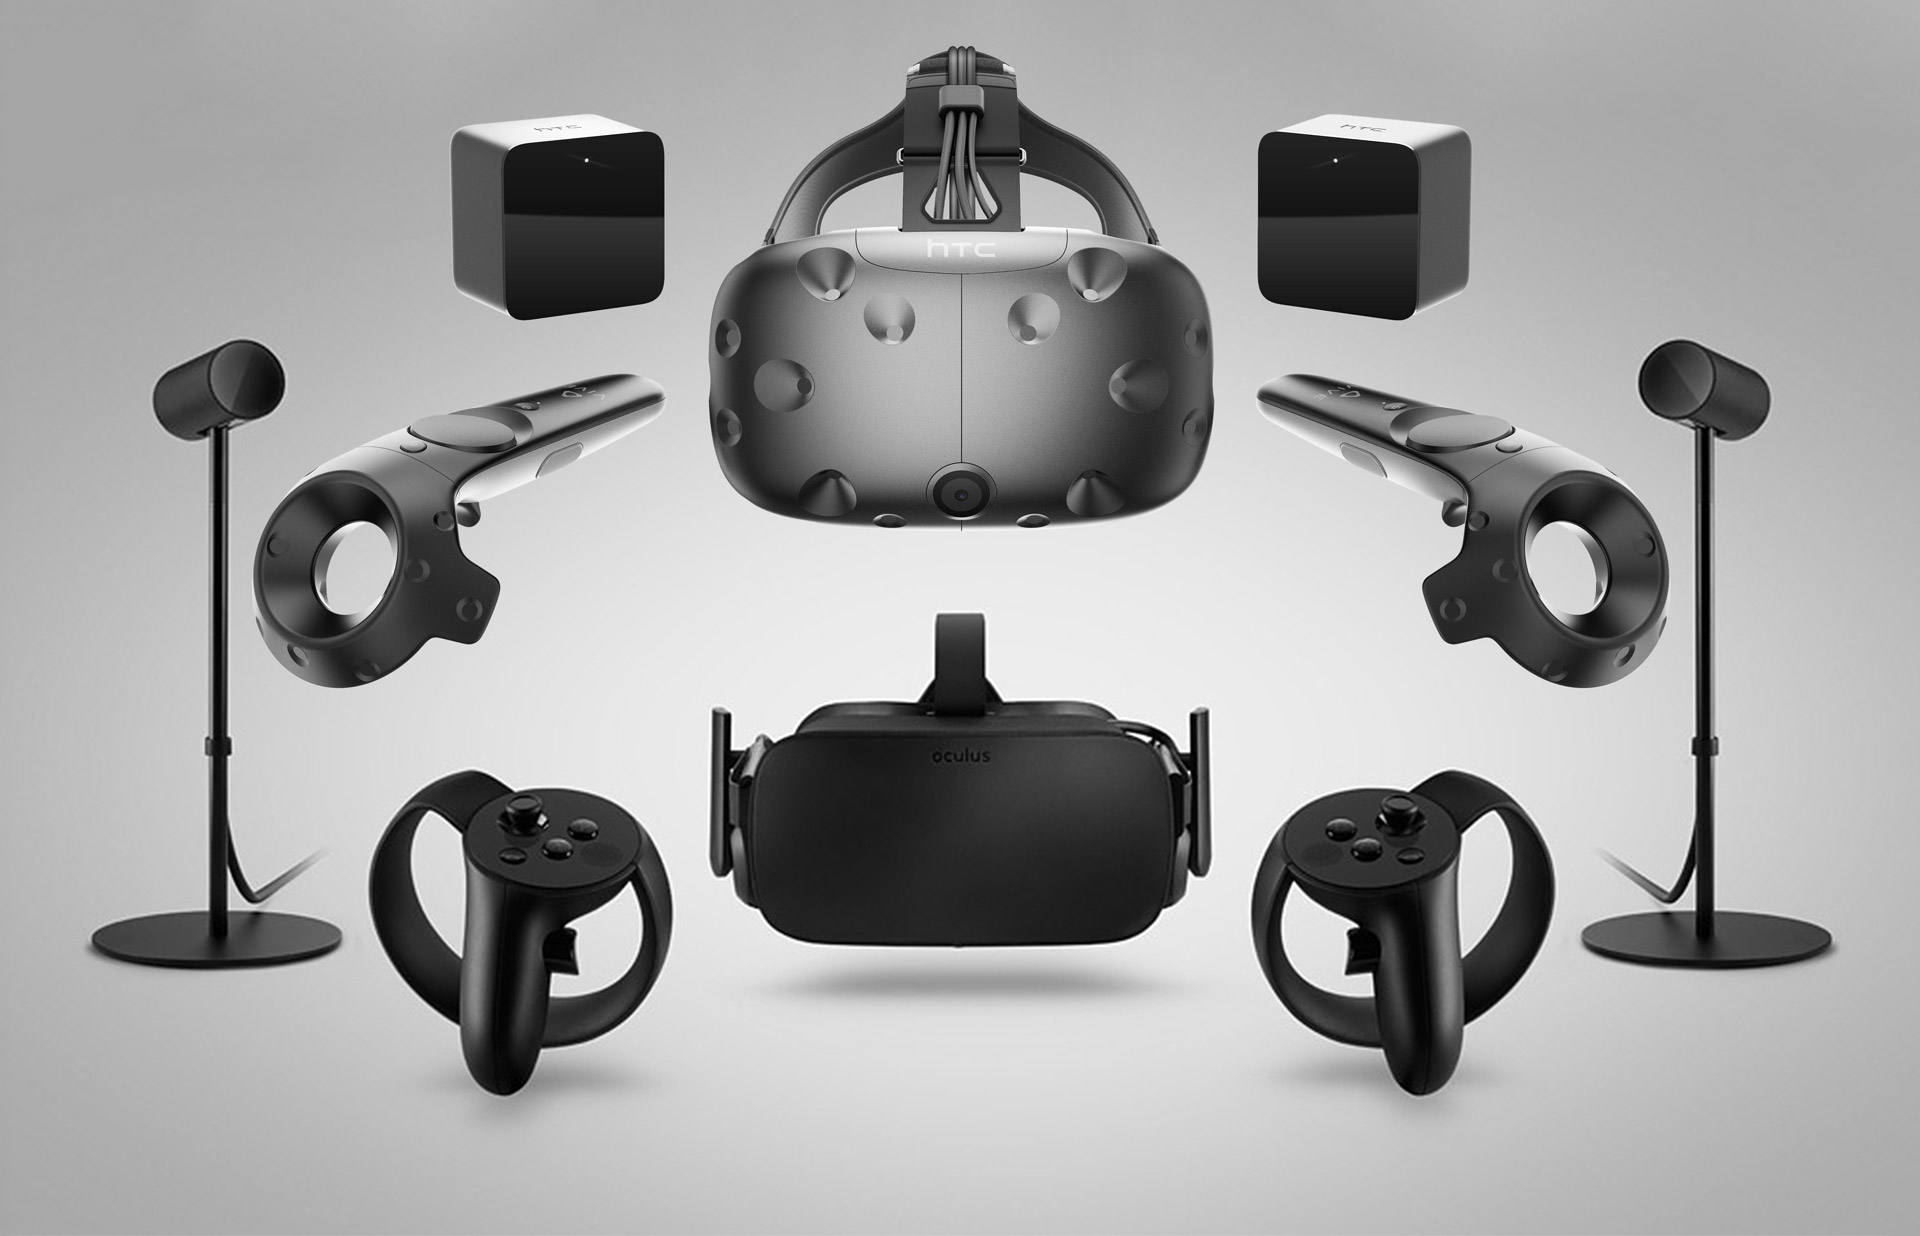 $100 Gift Card Offer Still Available for HTC Vive and Oculus Rift